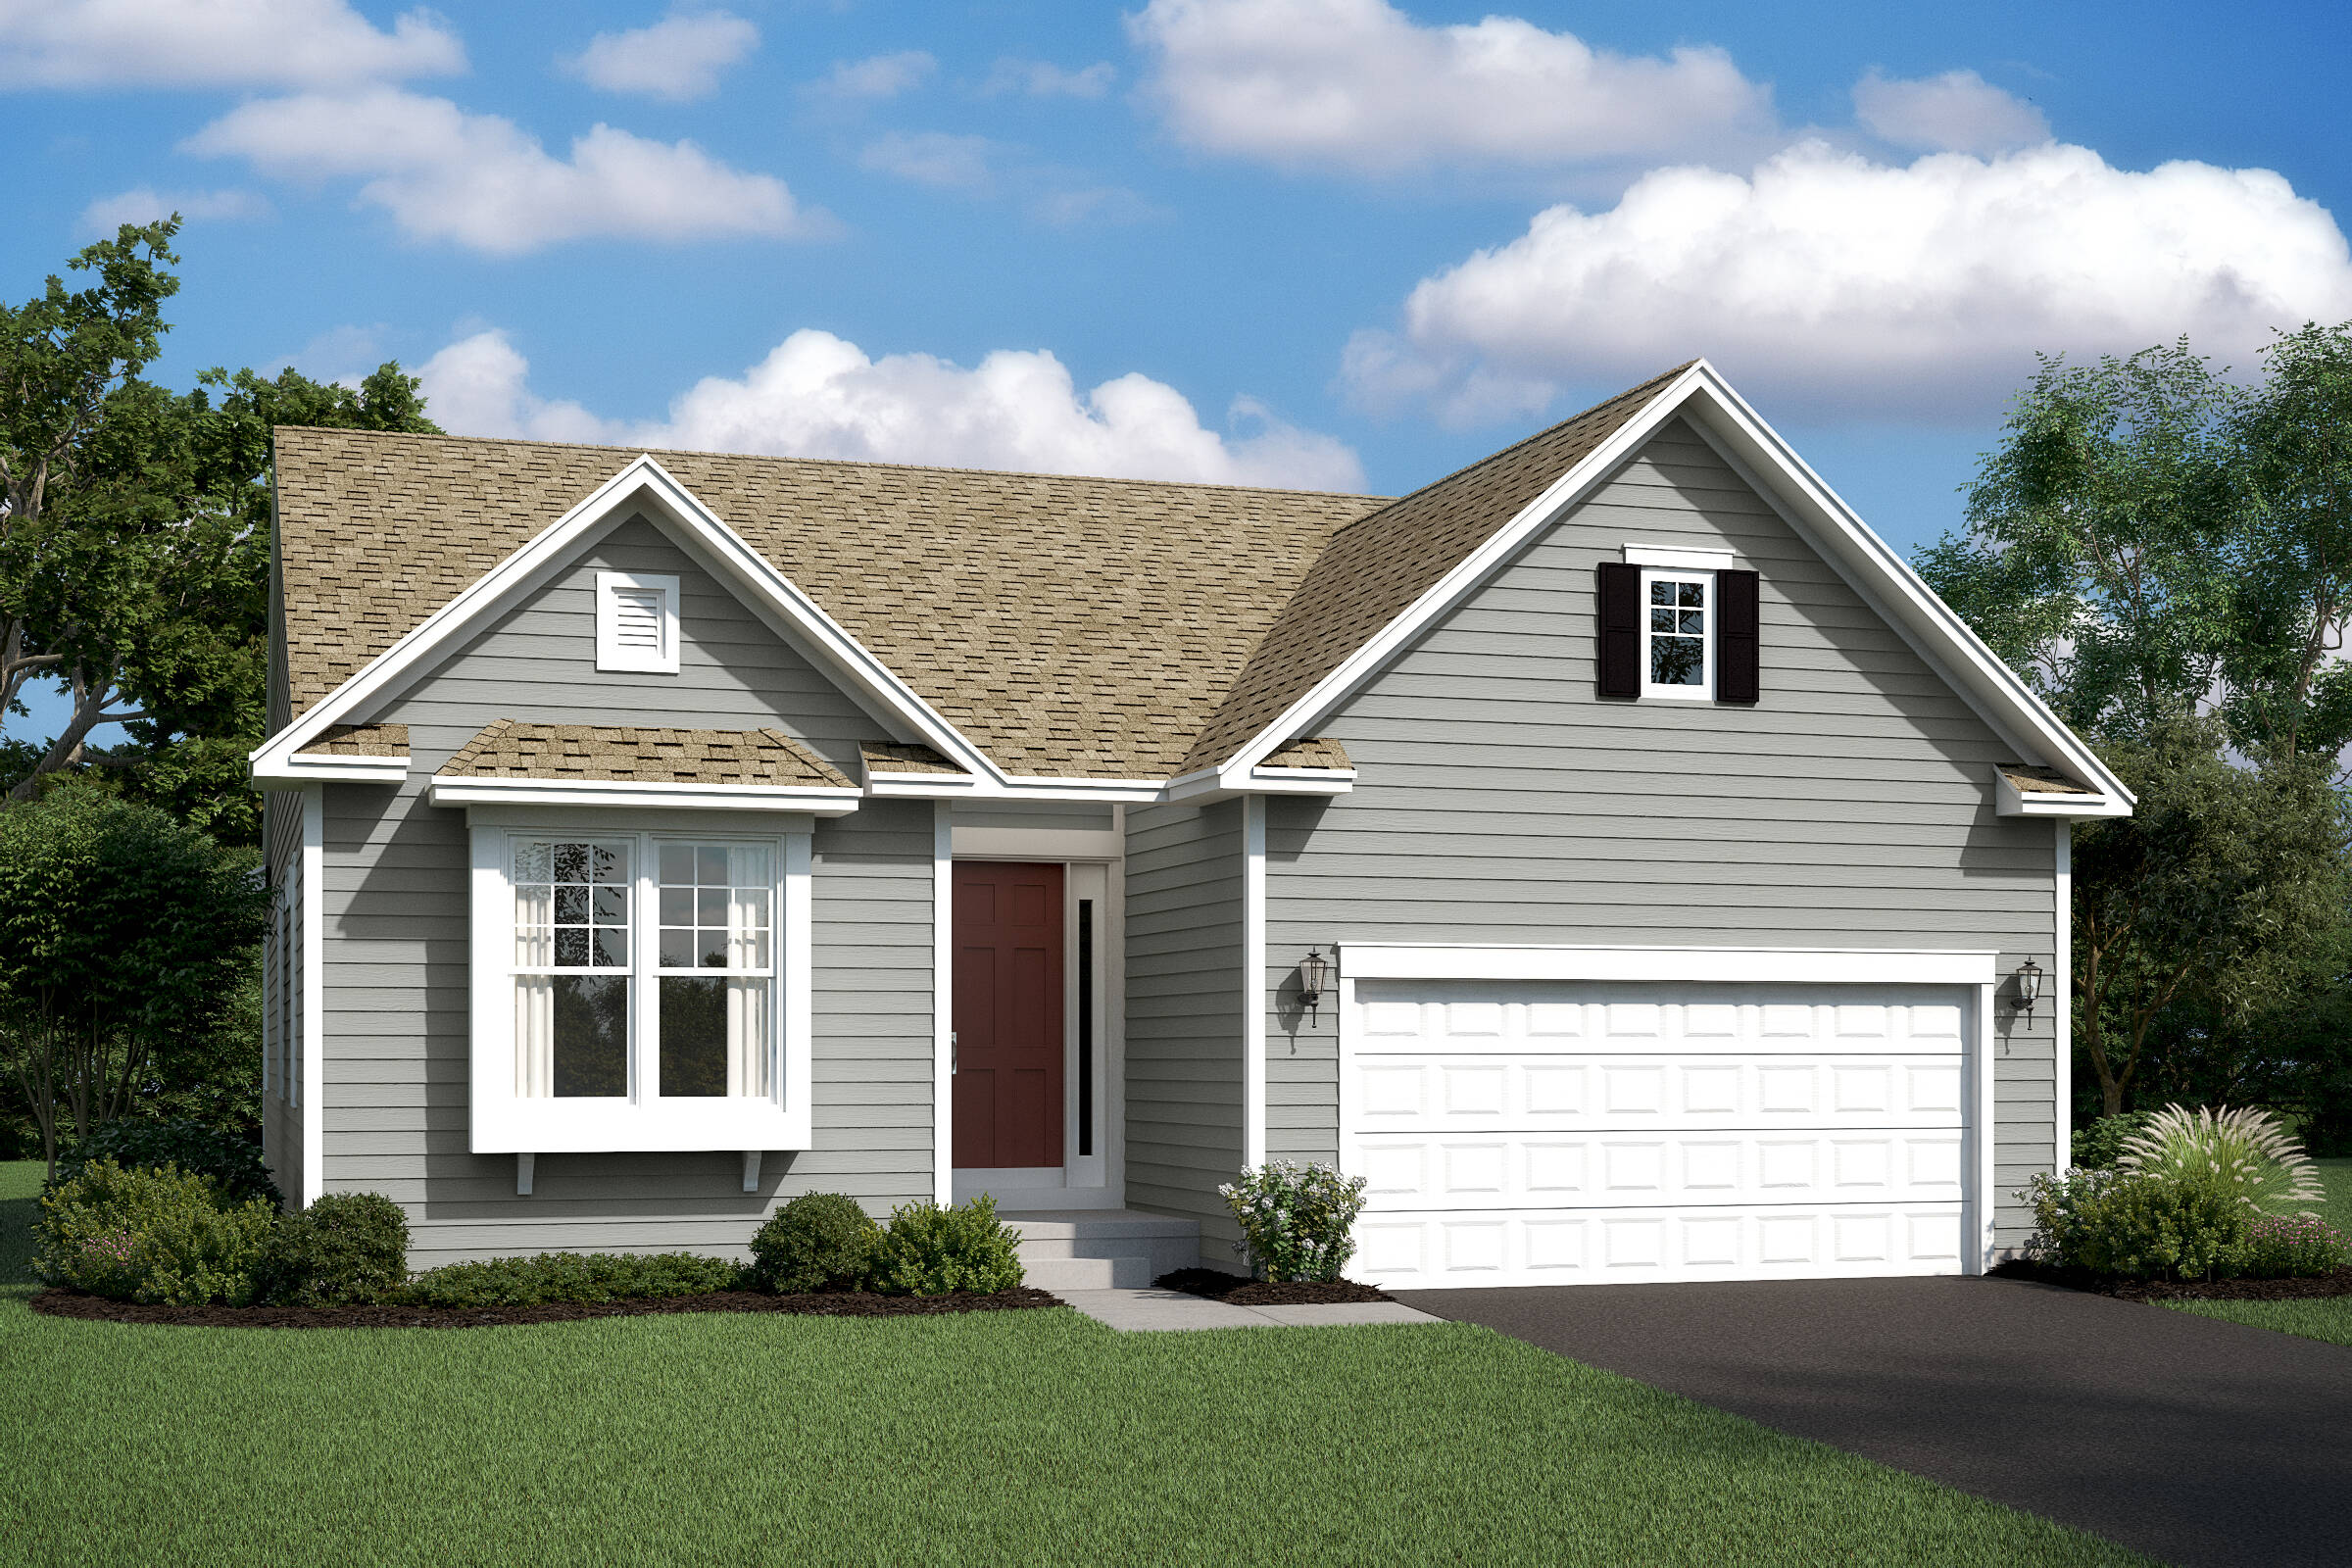 dorchester g2 new homes at baymont farms